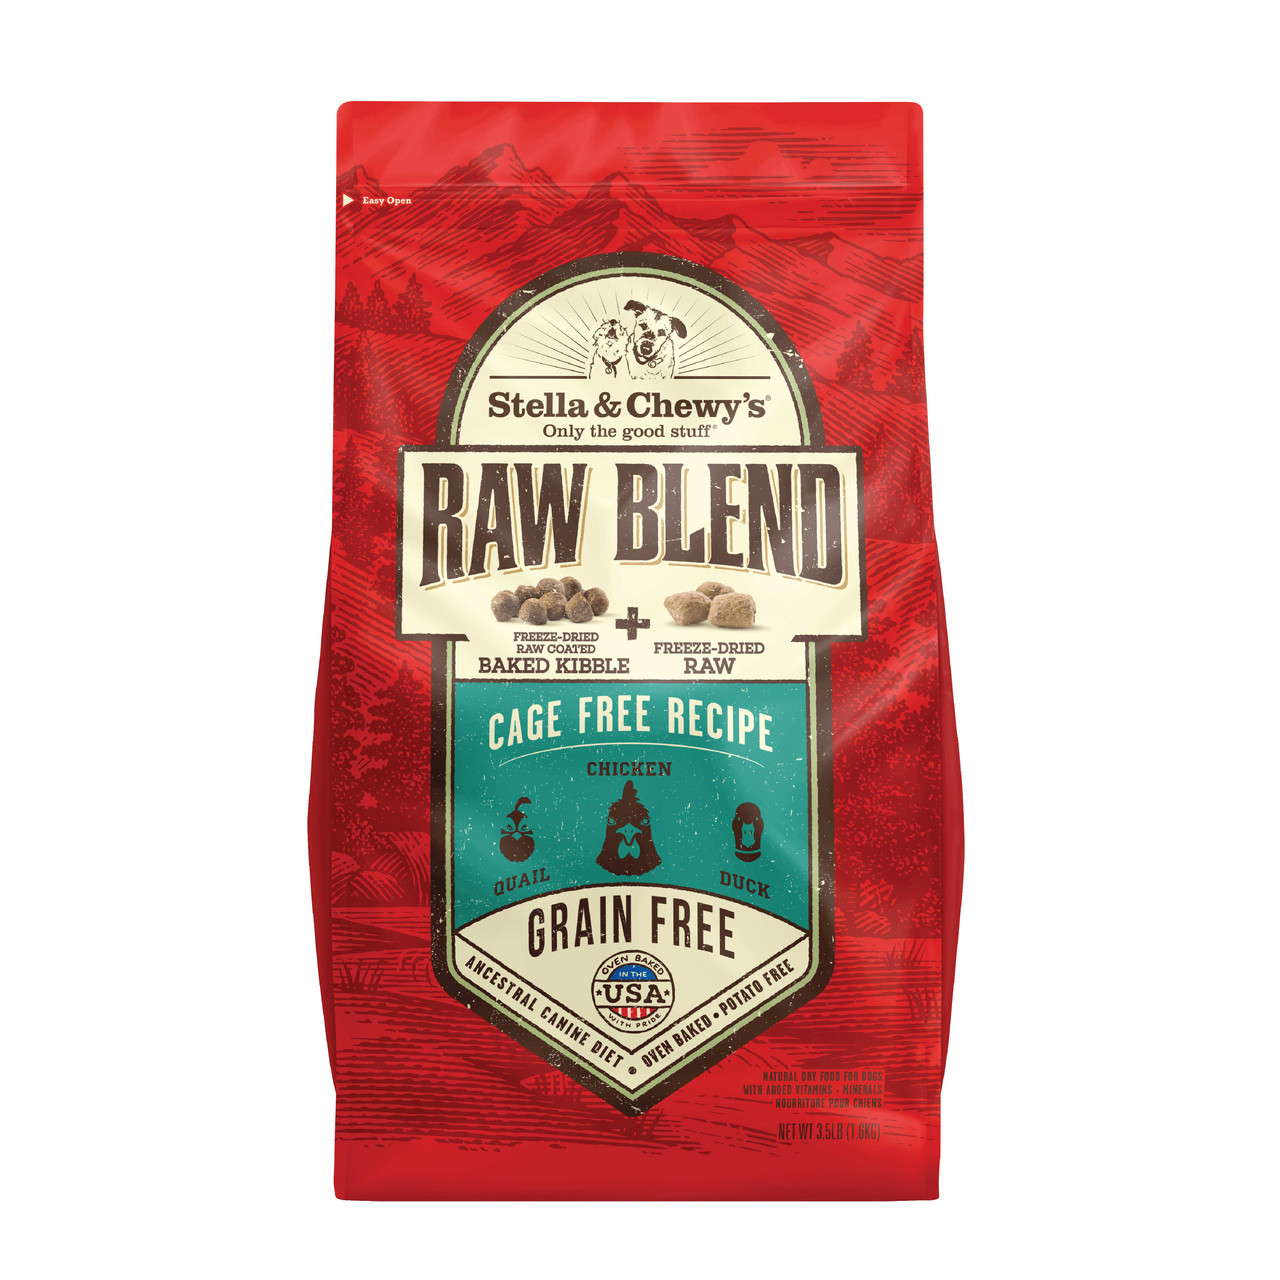 click here to shop Stella & Chewy's Raw Blend Cage-Free Recipe Dry Dog Food